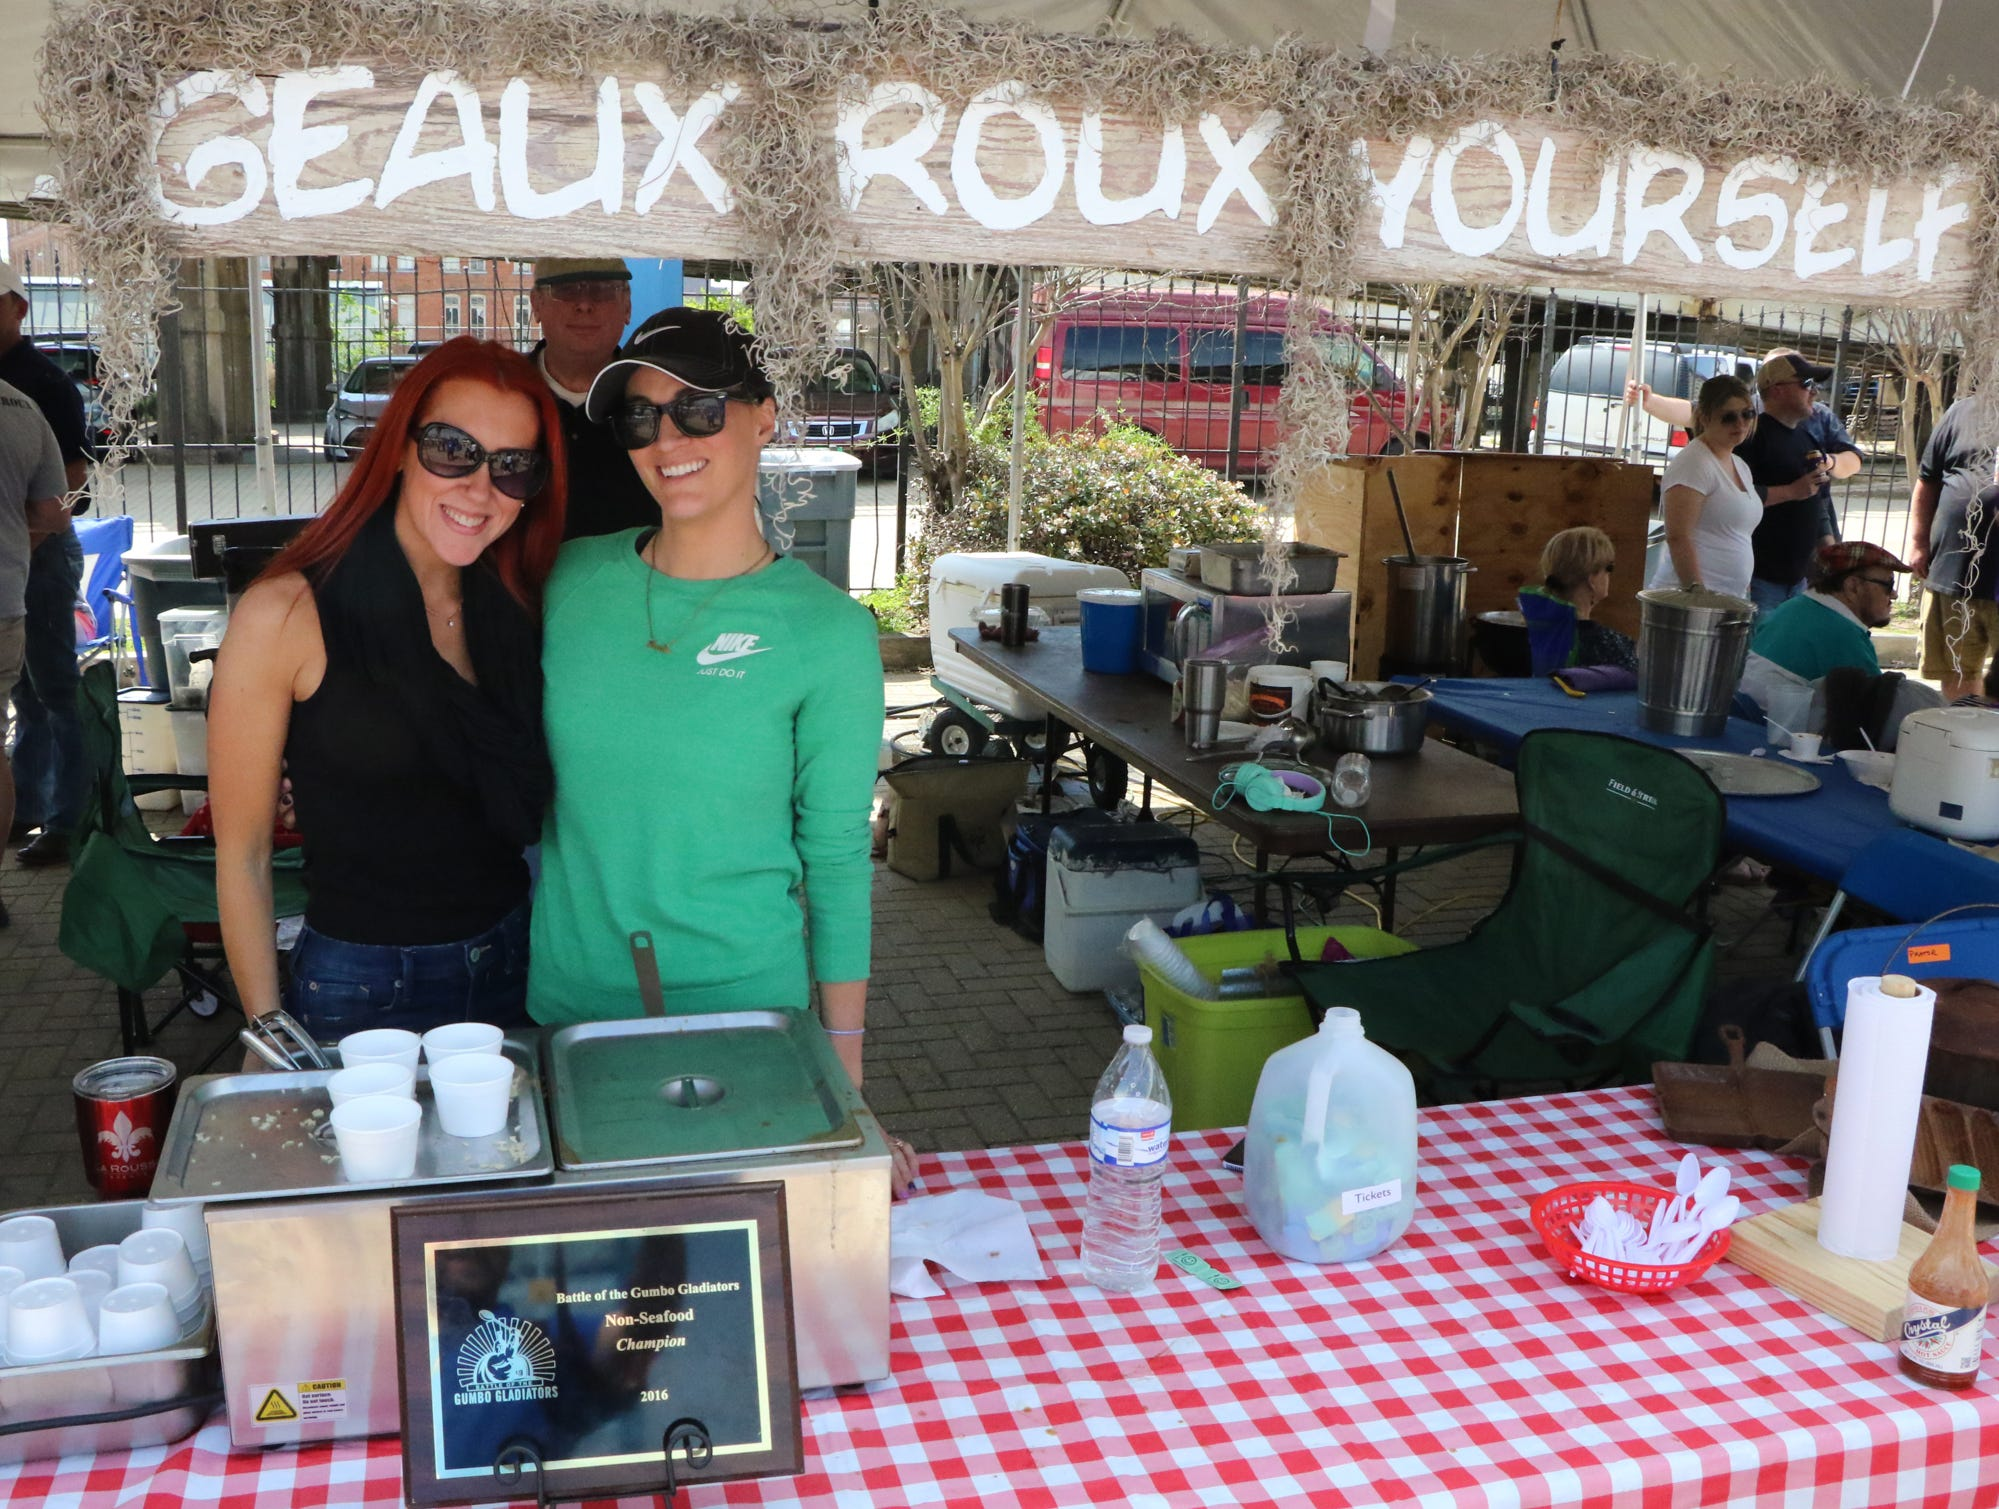 The Seventh Annual Battle of the Gumbo Gladiators Gumbo Cook-off with over 60 pots of gumbo on Saturday at Festival Plaza in downtown Shreveport.